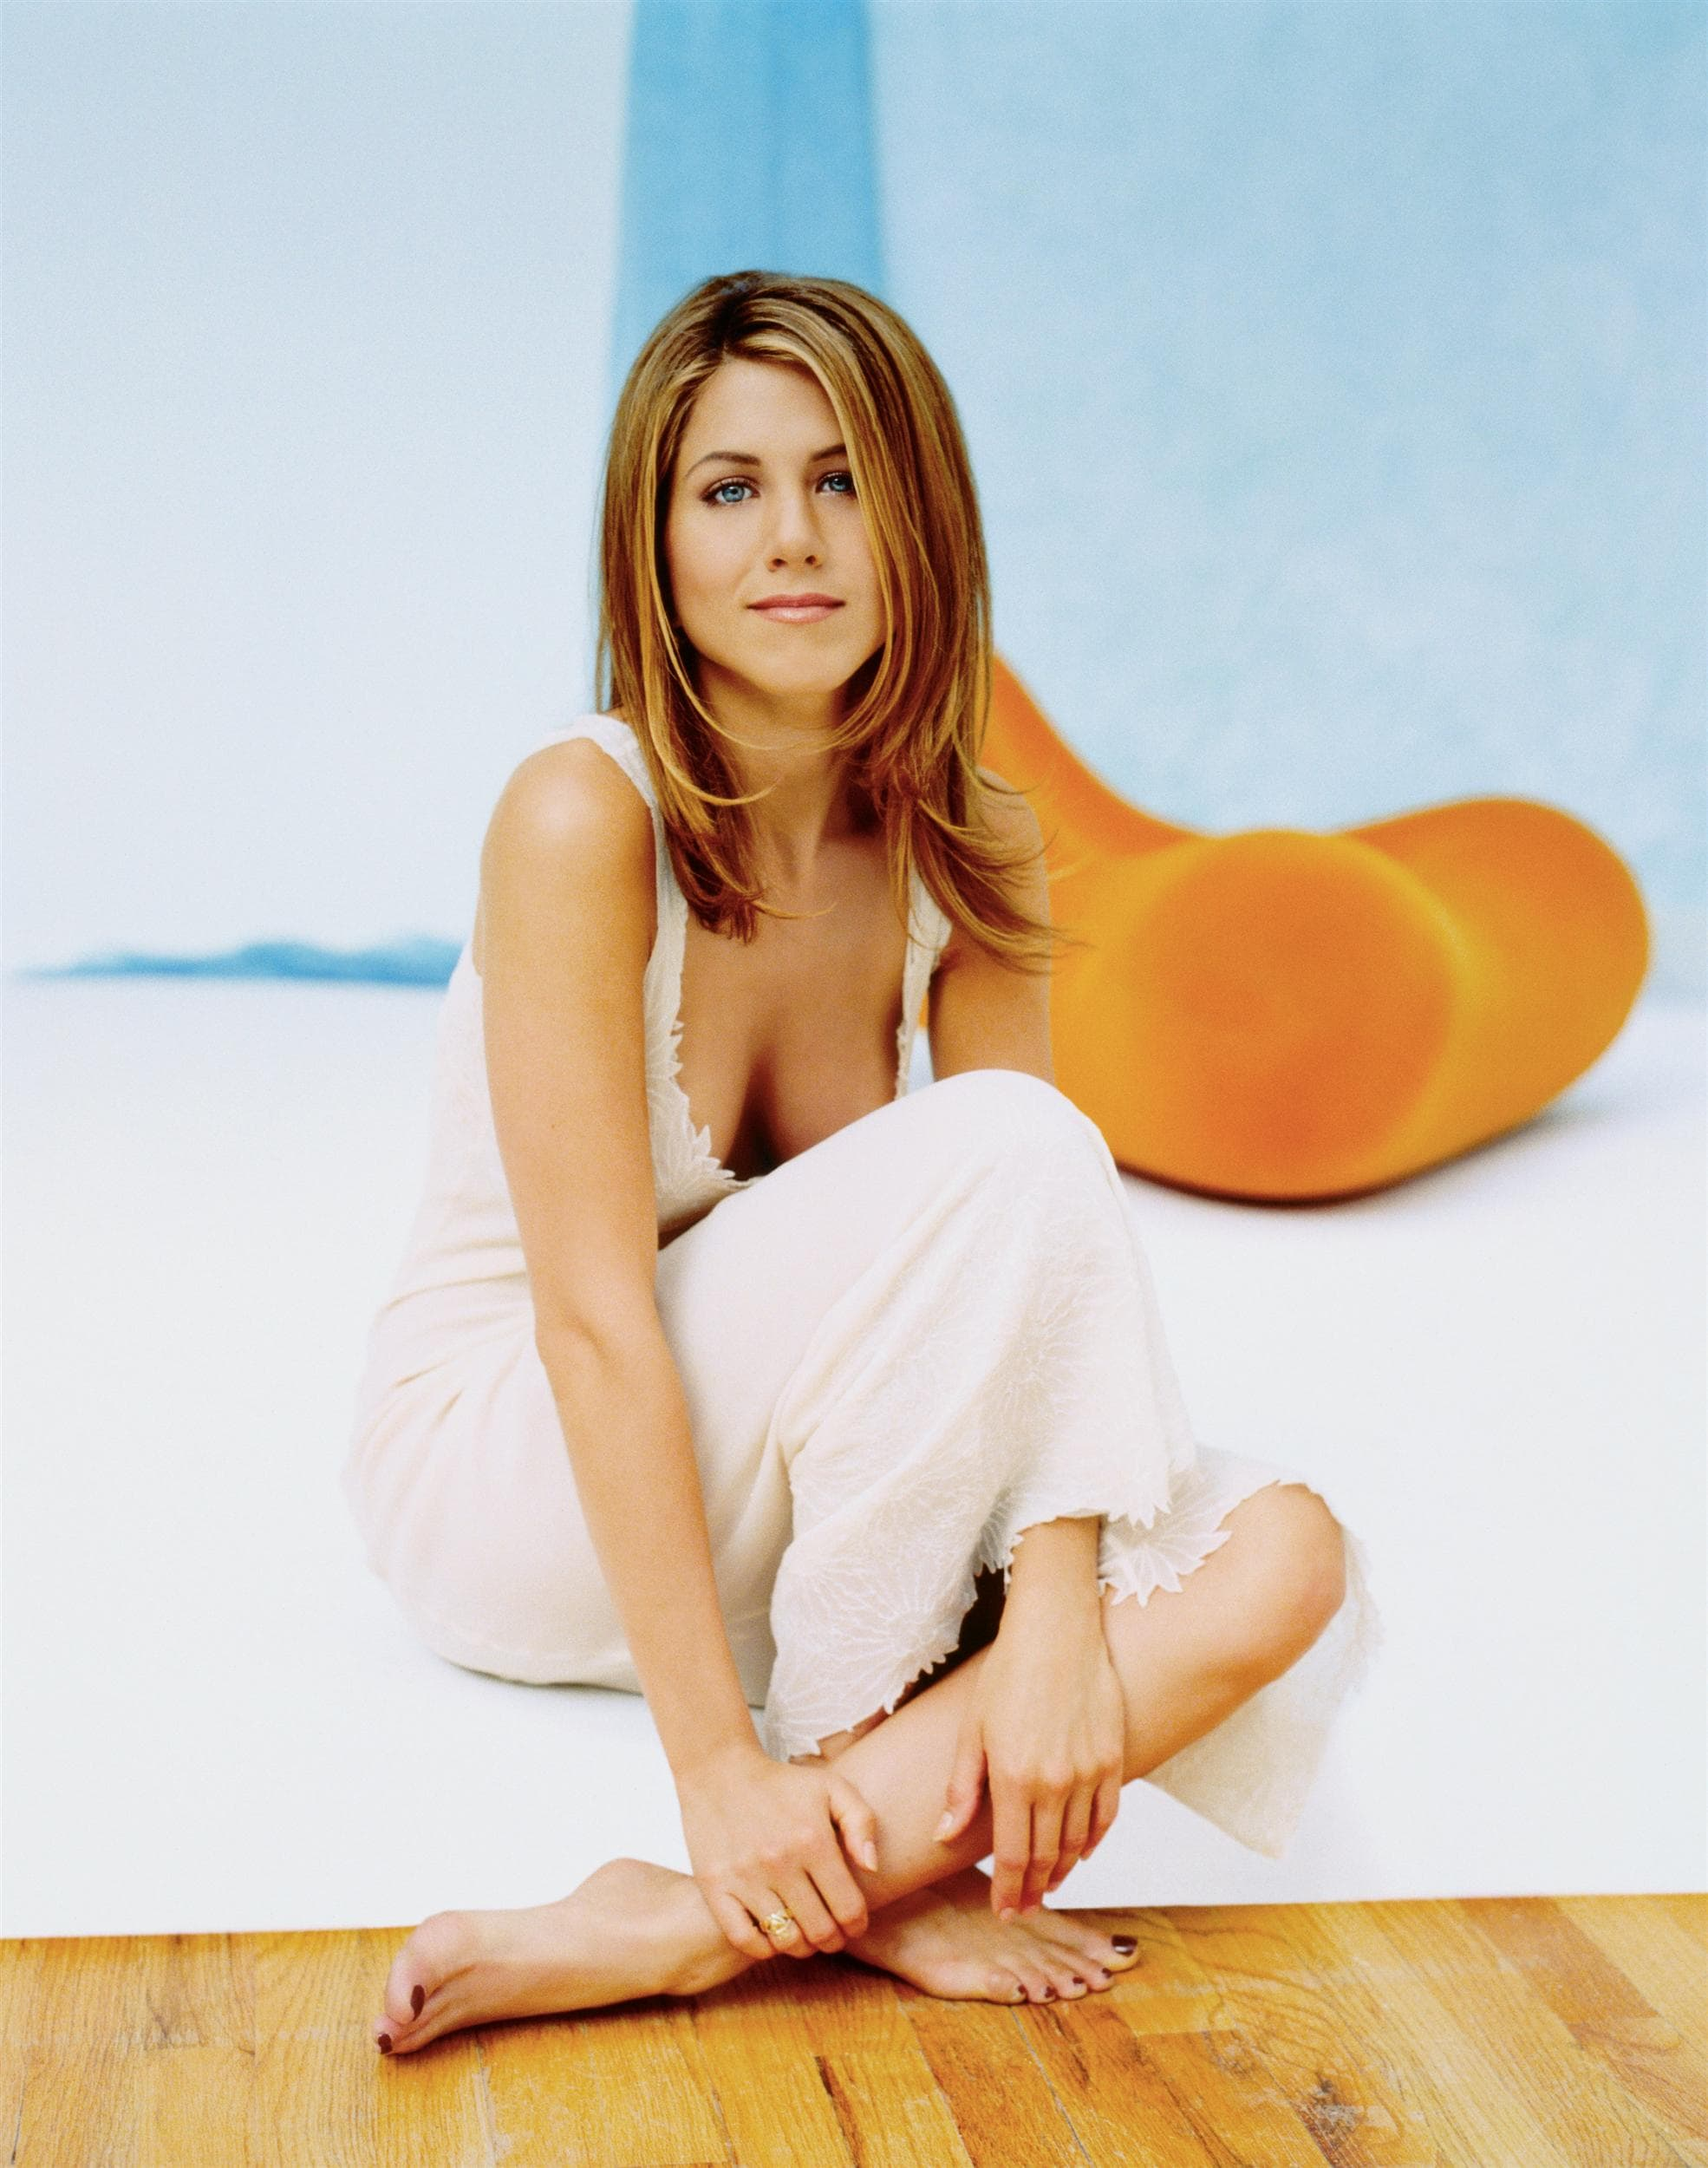 Jennifer Aniston beautiful pictures